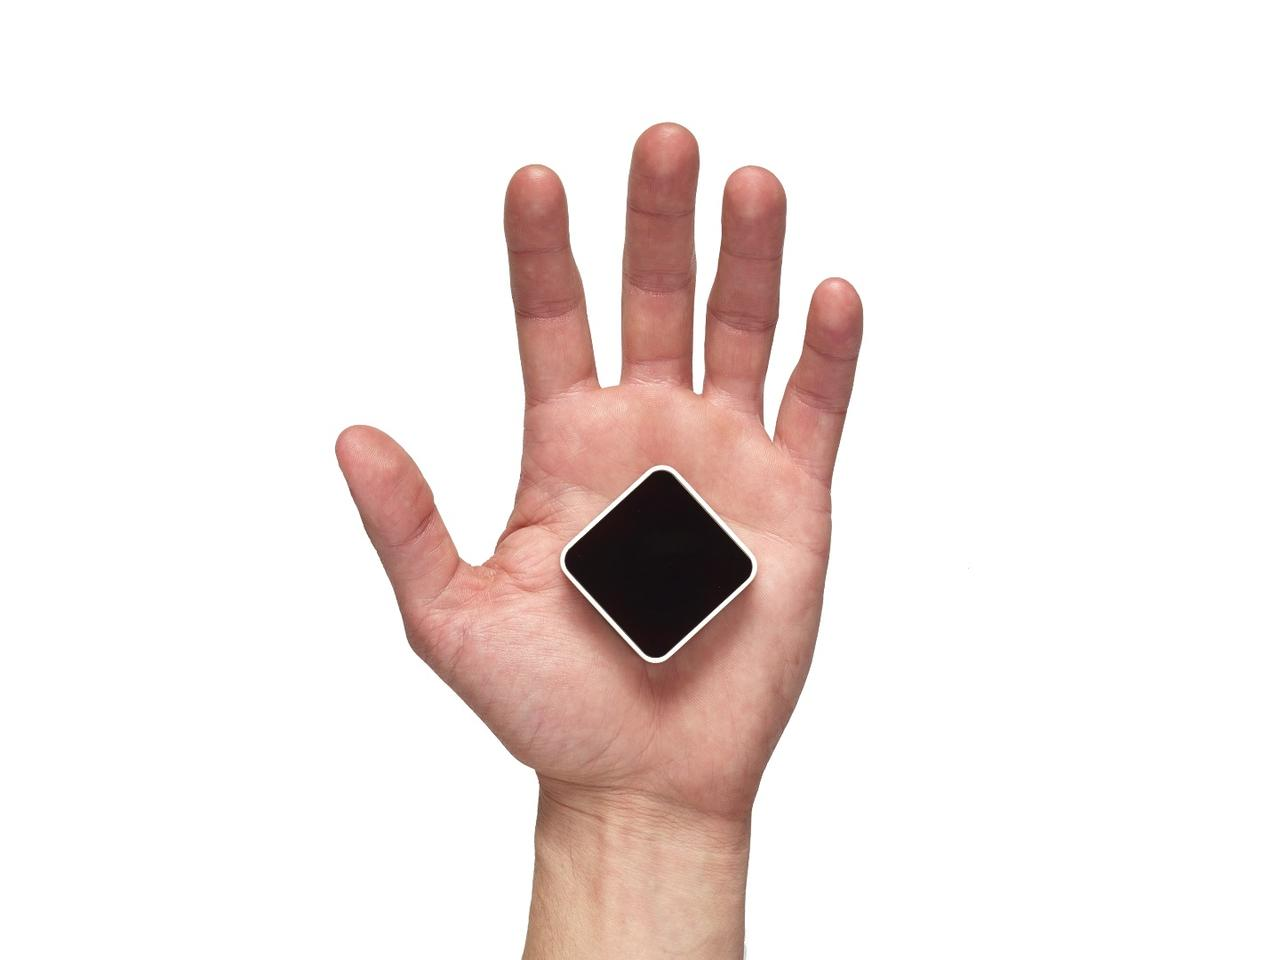 The Density sensor is a small sensor designed to collect foot traffic data